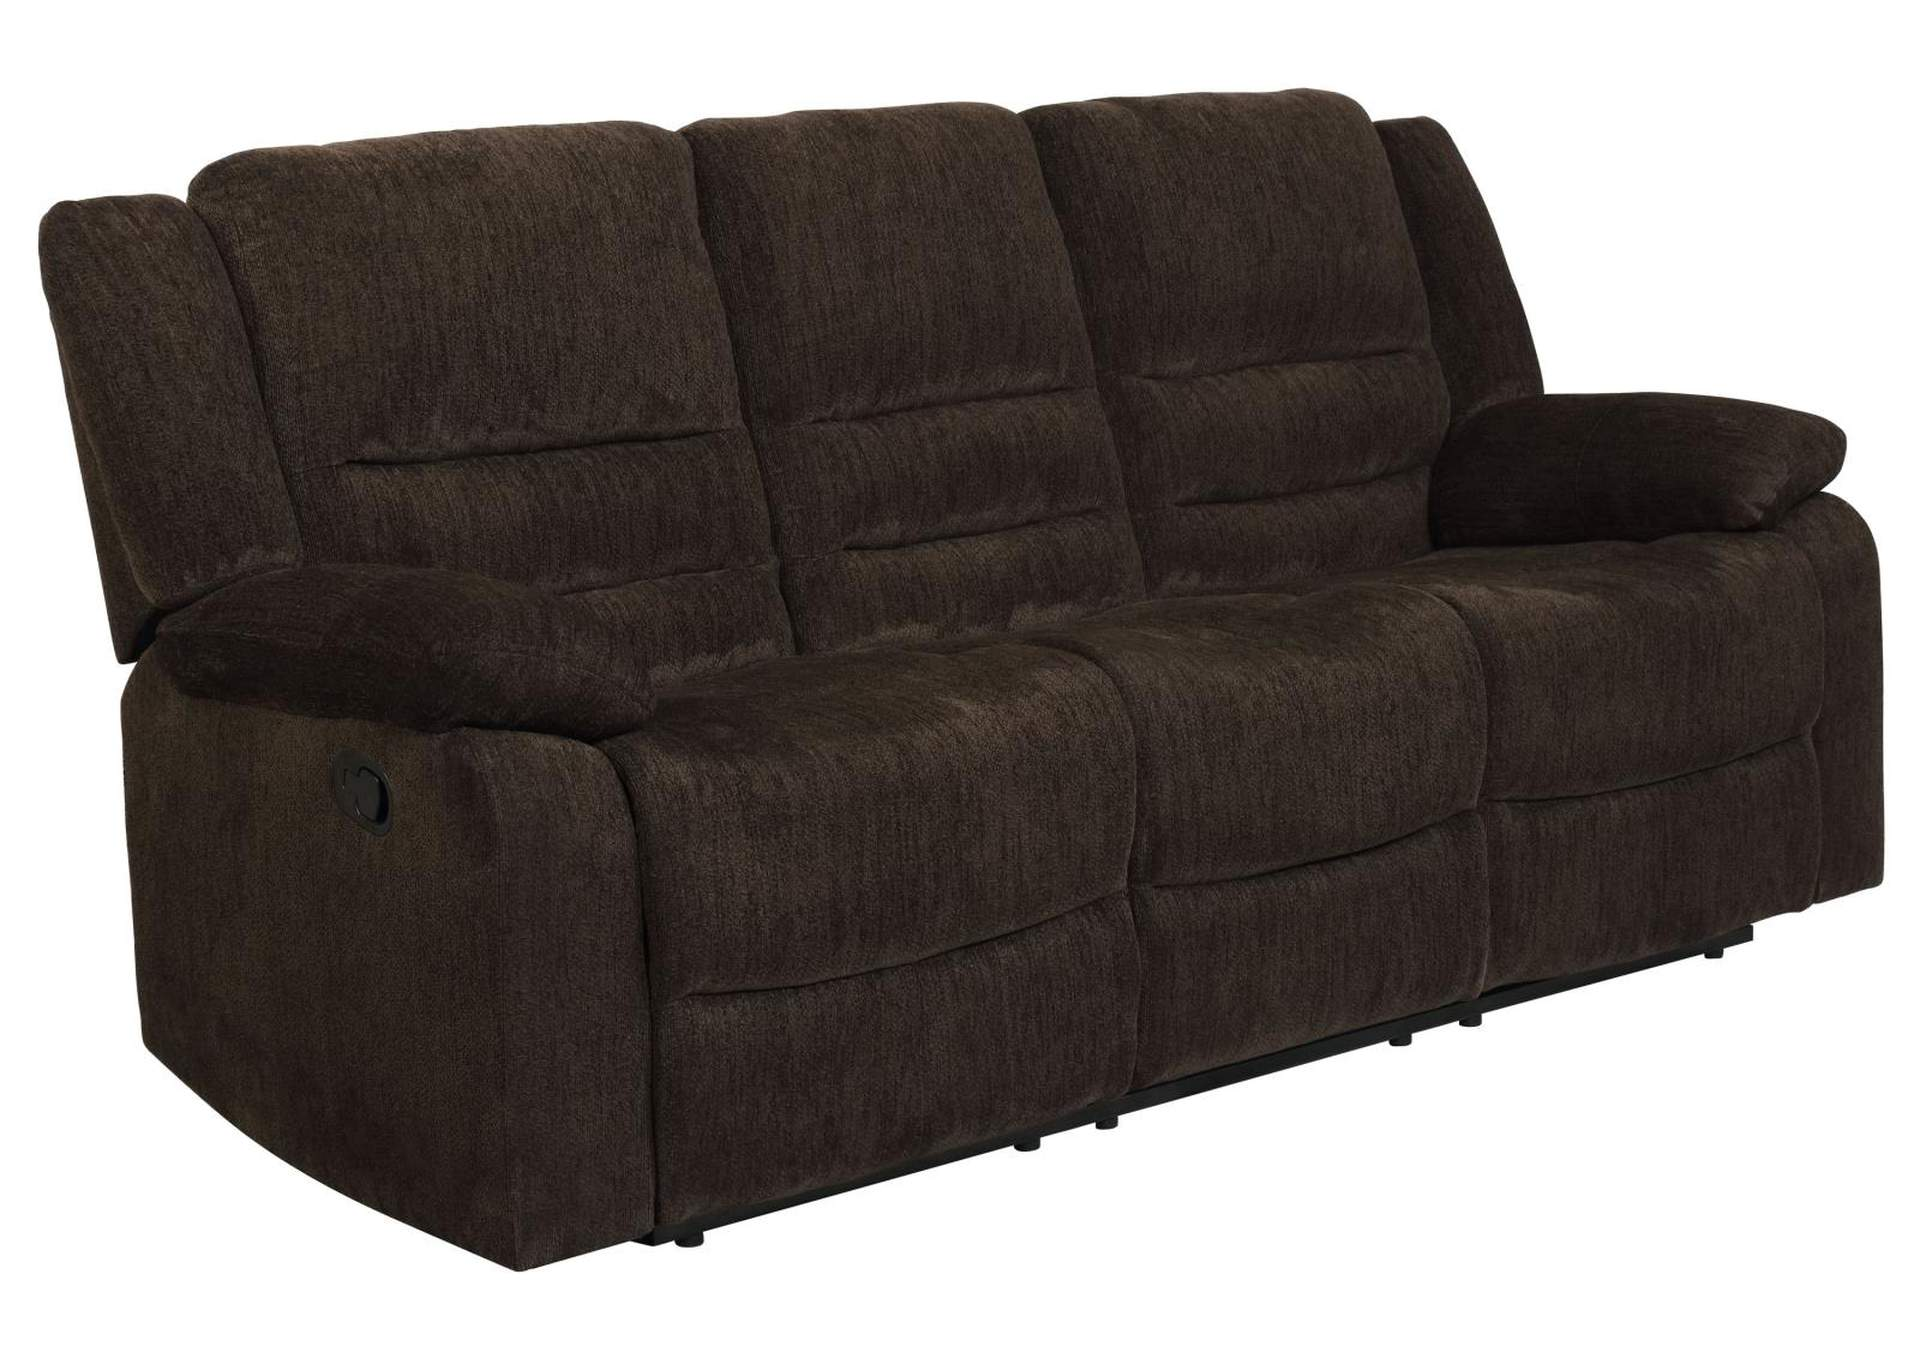 Eerie Black Gordon Chocolate Reclining Sofa,Coaster Furniture